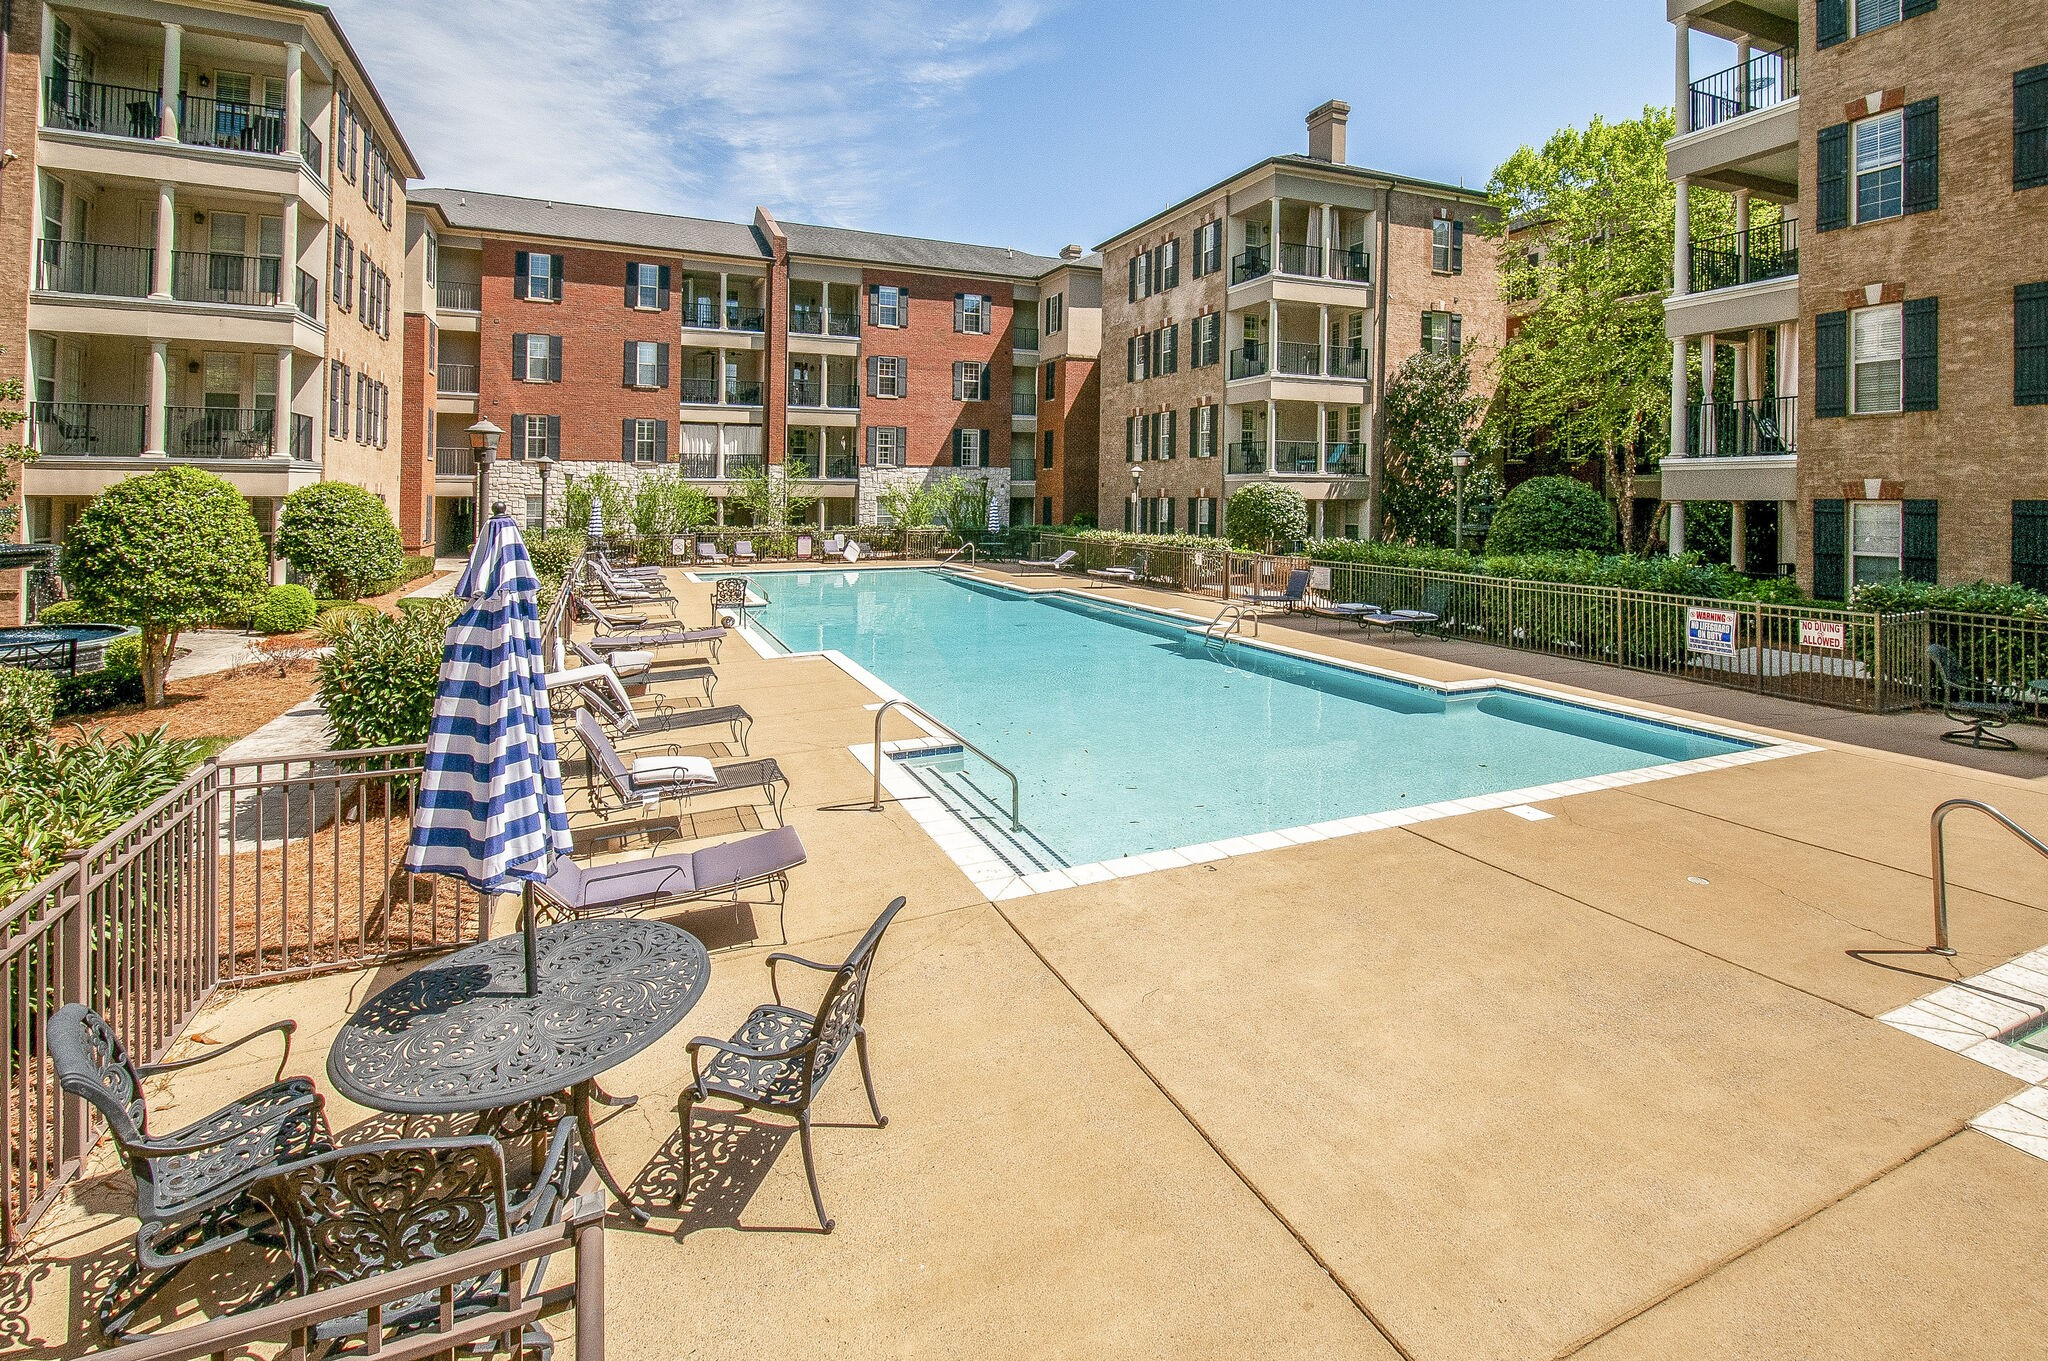 Gorgeous move-in ready condo with pool and hot tub.  Gated community minutes to Maryland Farms and walking distance to shopping and restaurants.  Easy access to I-65. High-end finishes throughout and freshly painted.